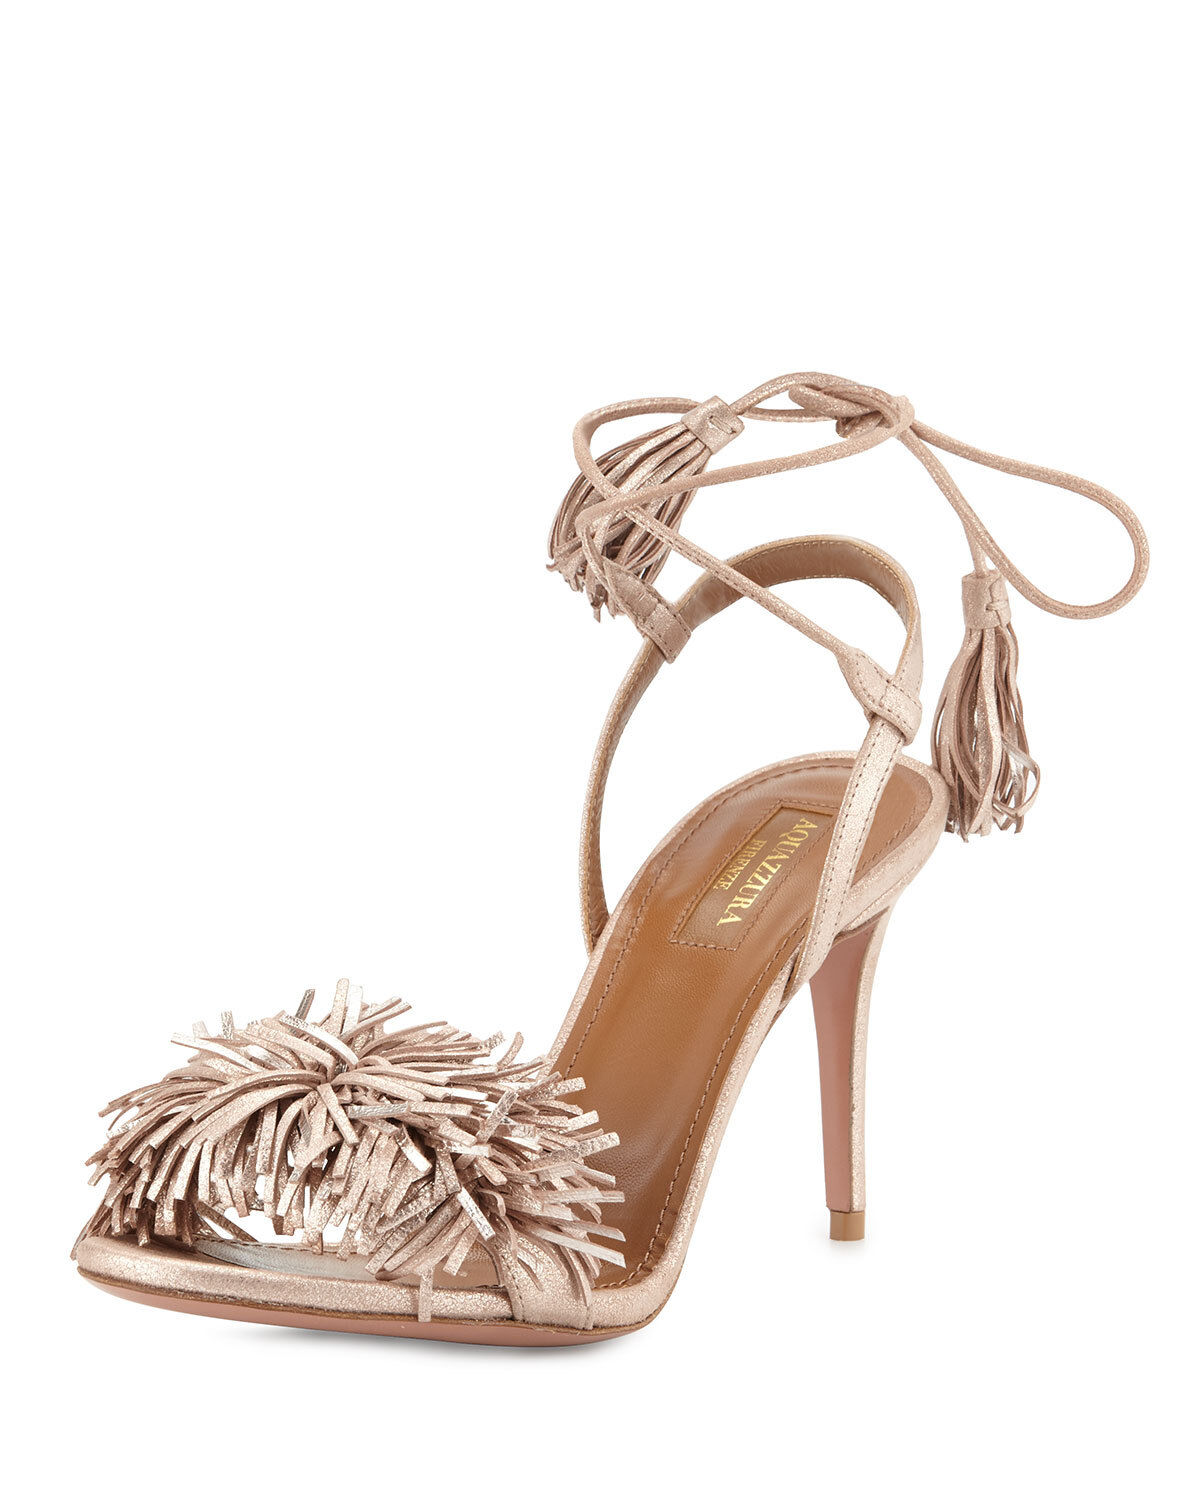 Aquazzura Wild Thing Suede 85mm Sandal, pink gold 36